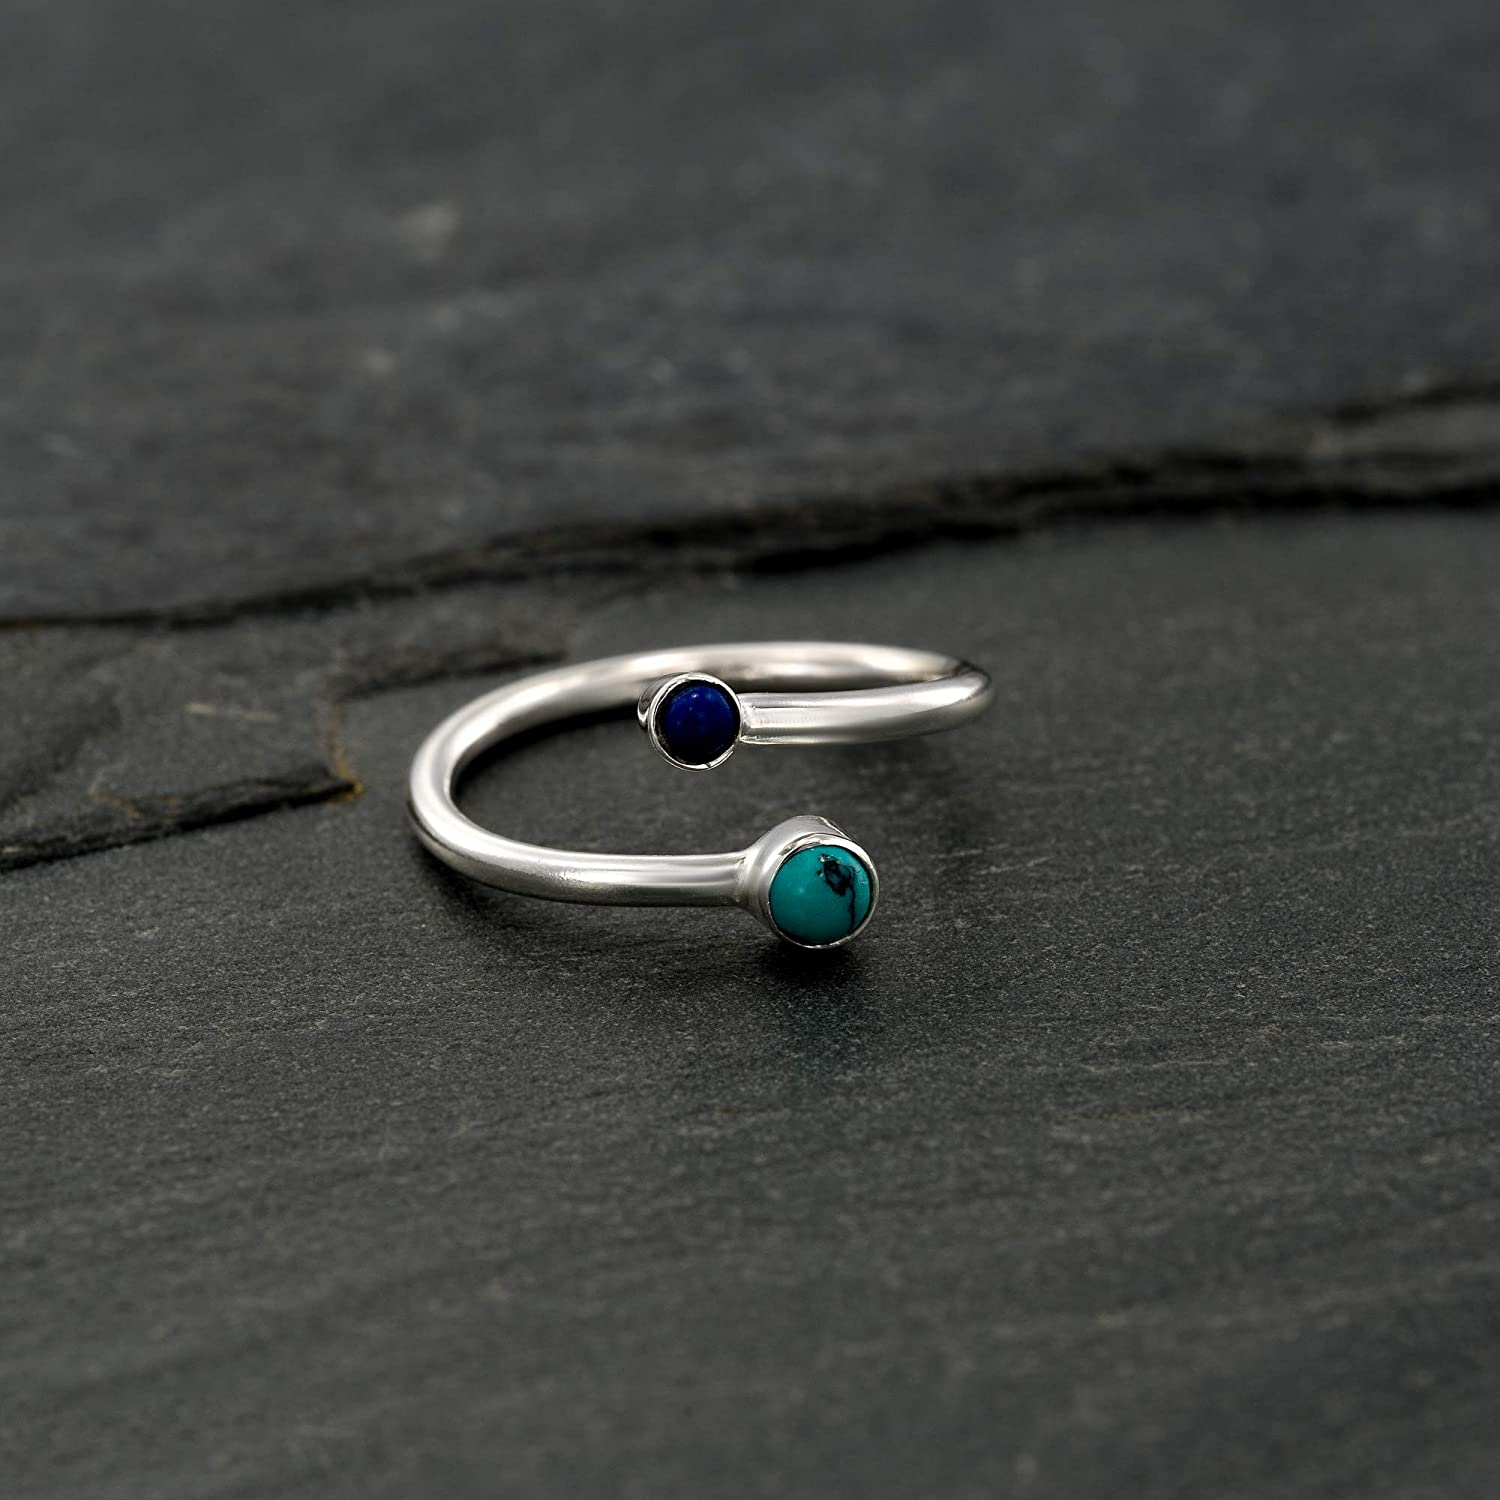 Handmade Boho Summer Wedding Accessories Sterling Silver Open Adjustable Foot OR Midi Knuckle Ring with Turquoise /& Lapis gemstones Toe Ring Unique Bohemian Beach jewelry